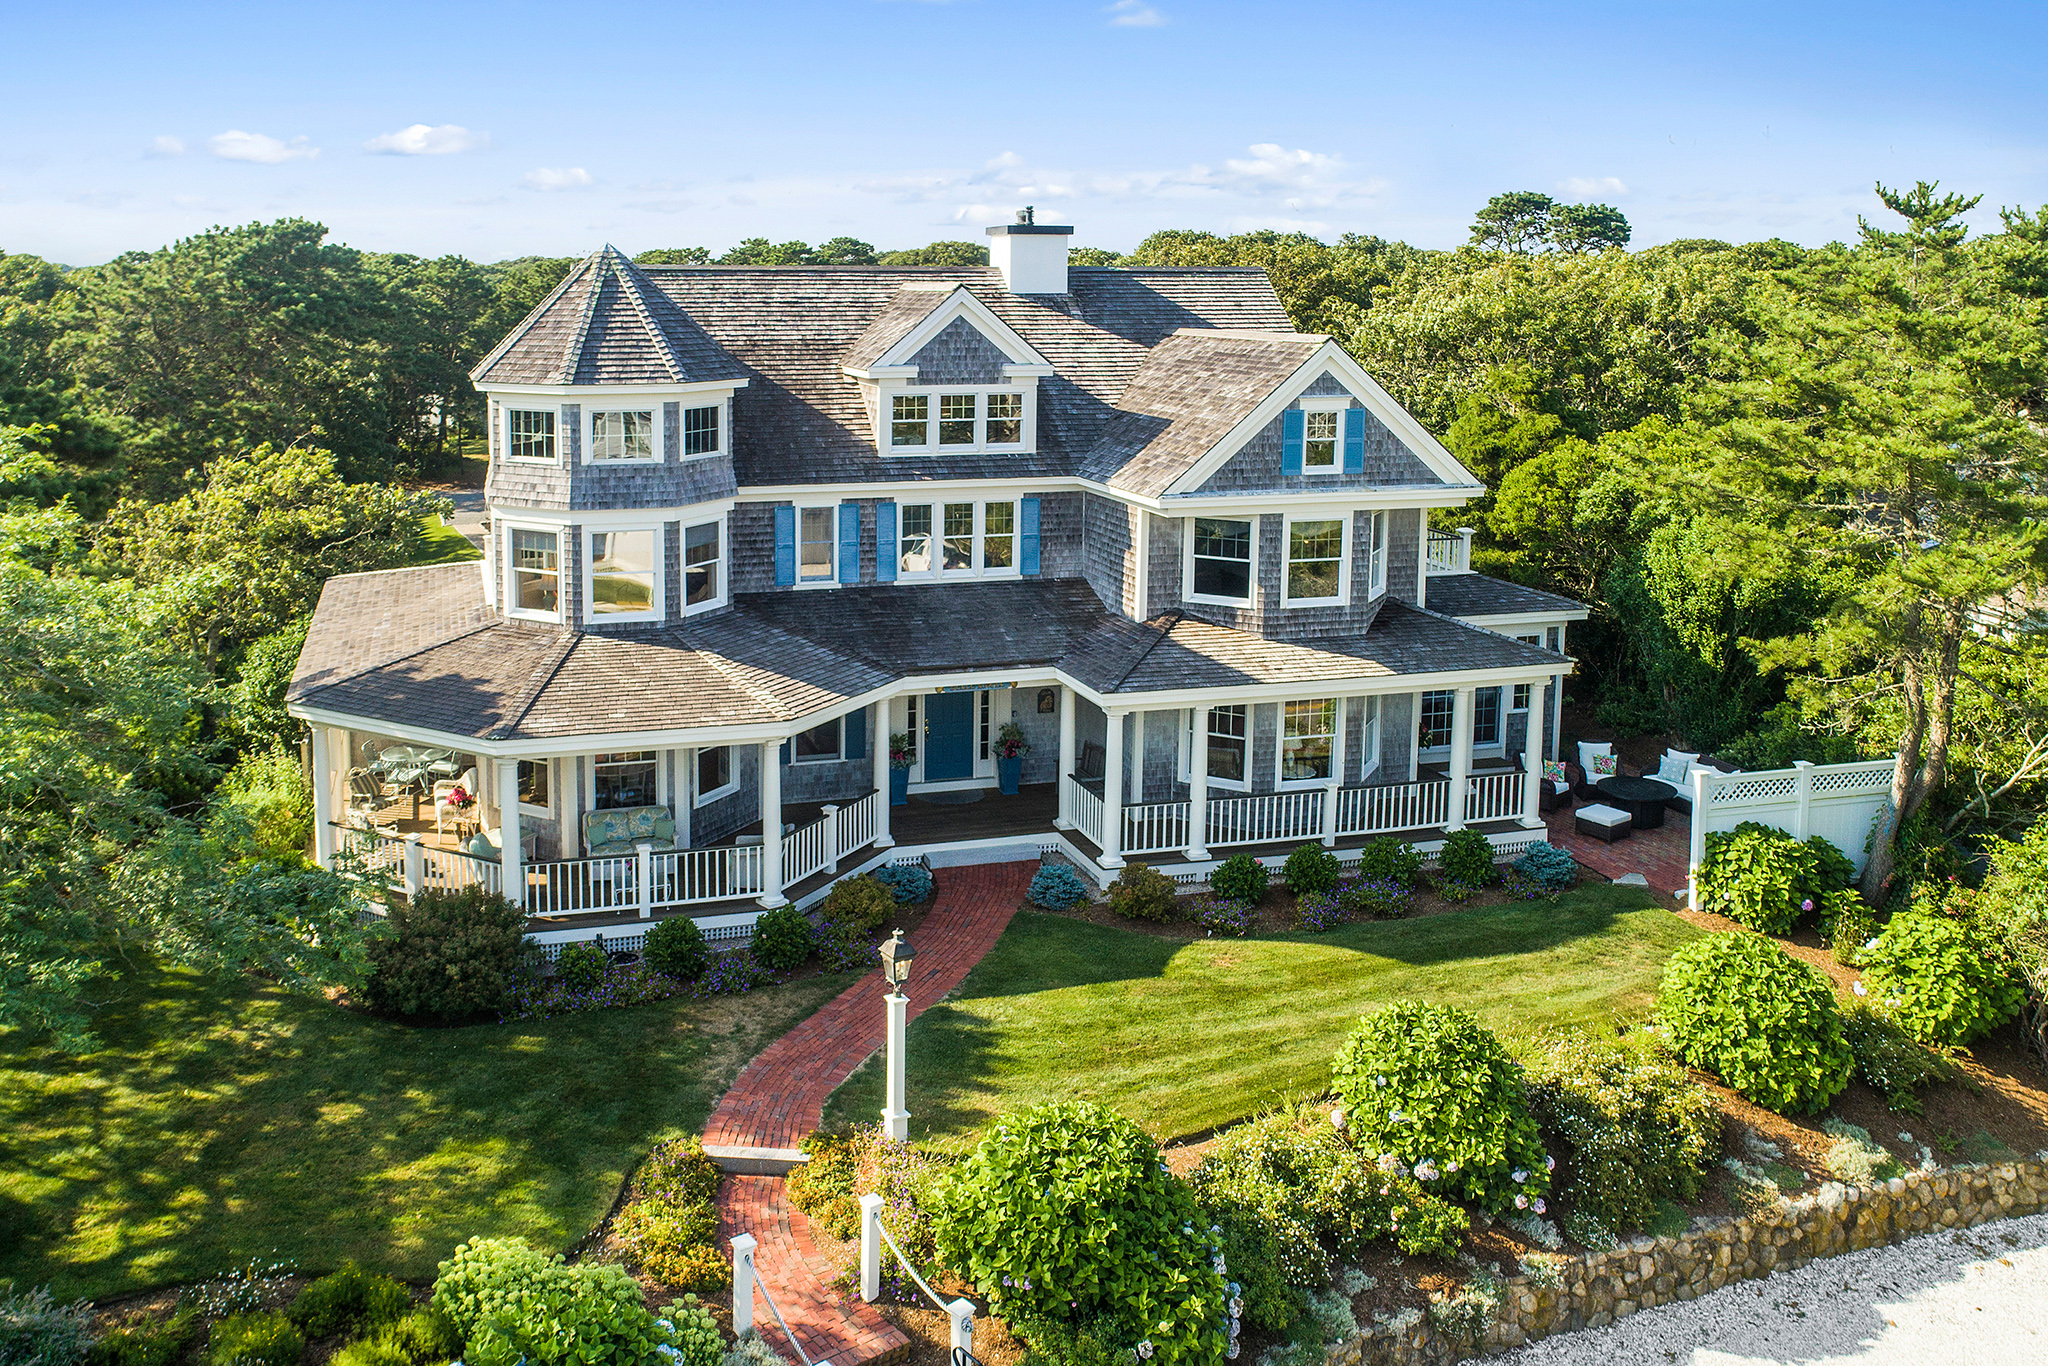 SOLD By Griffin Realty Group| Shore Drive West Harwich, Ma 02671 | MLS # 21906021|